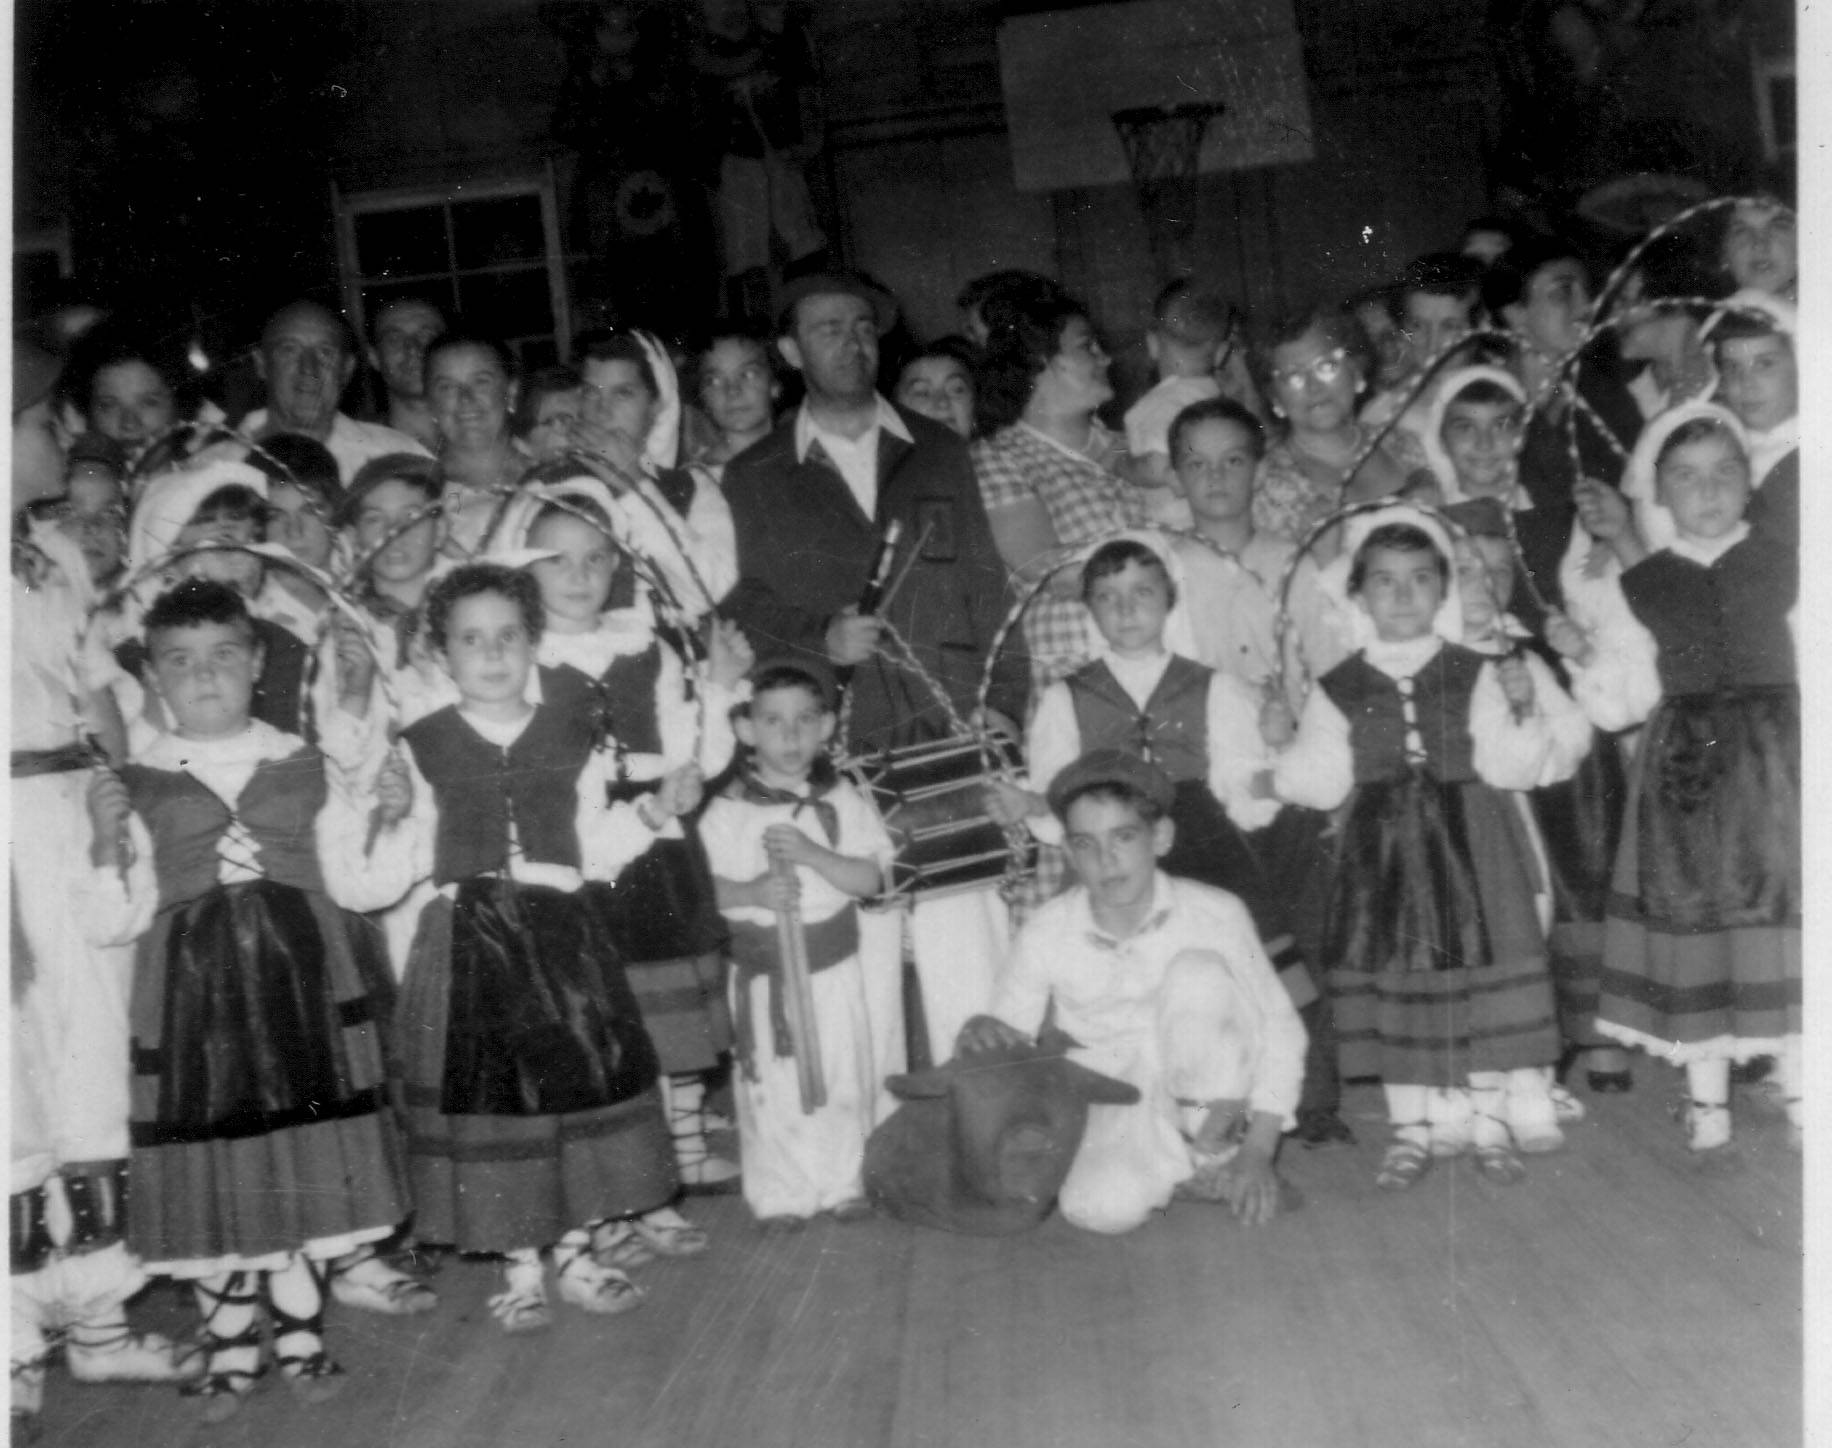 1956 NY children dancers inside